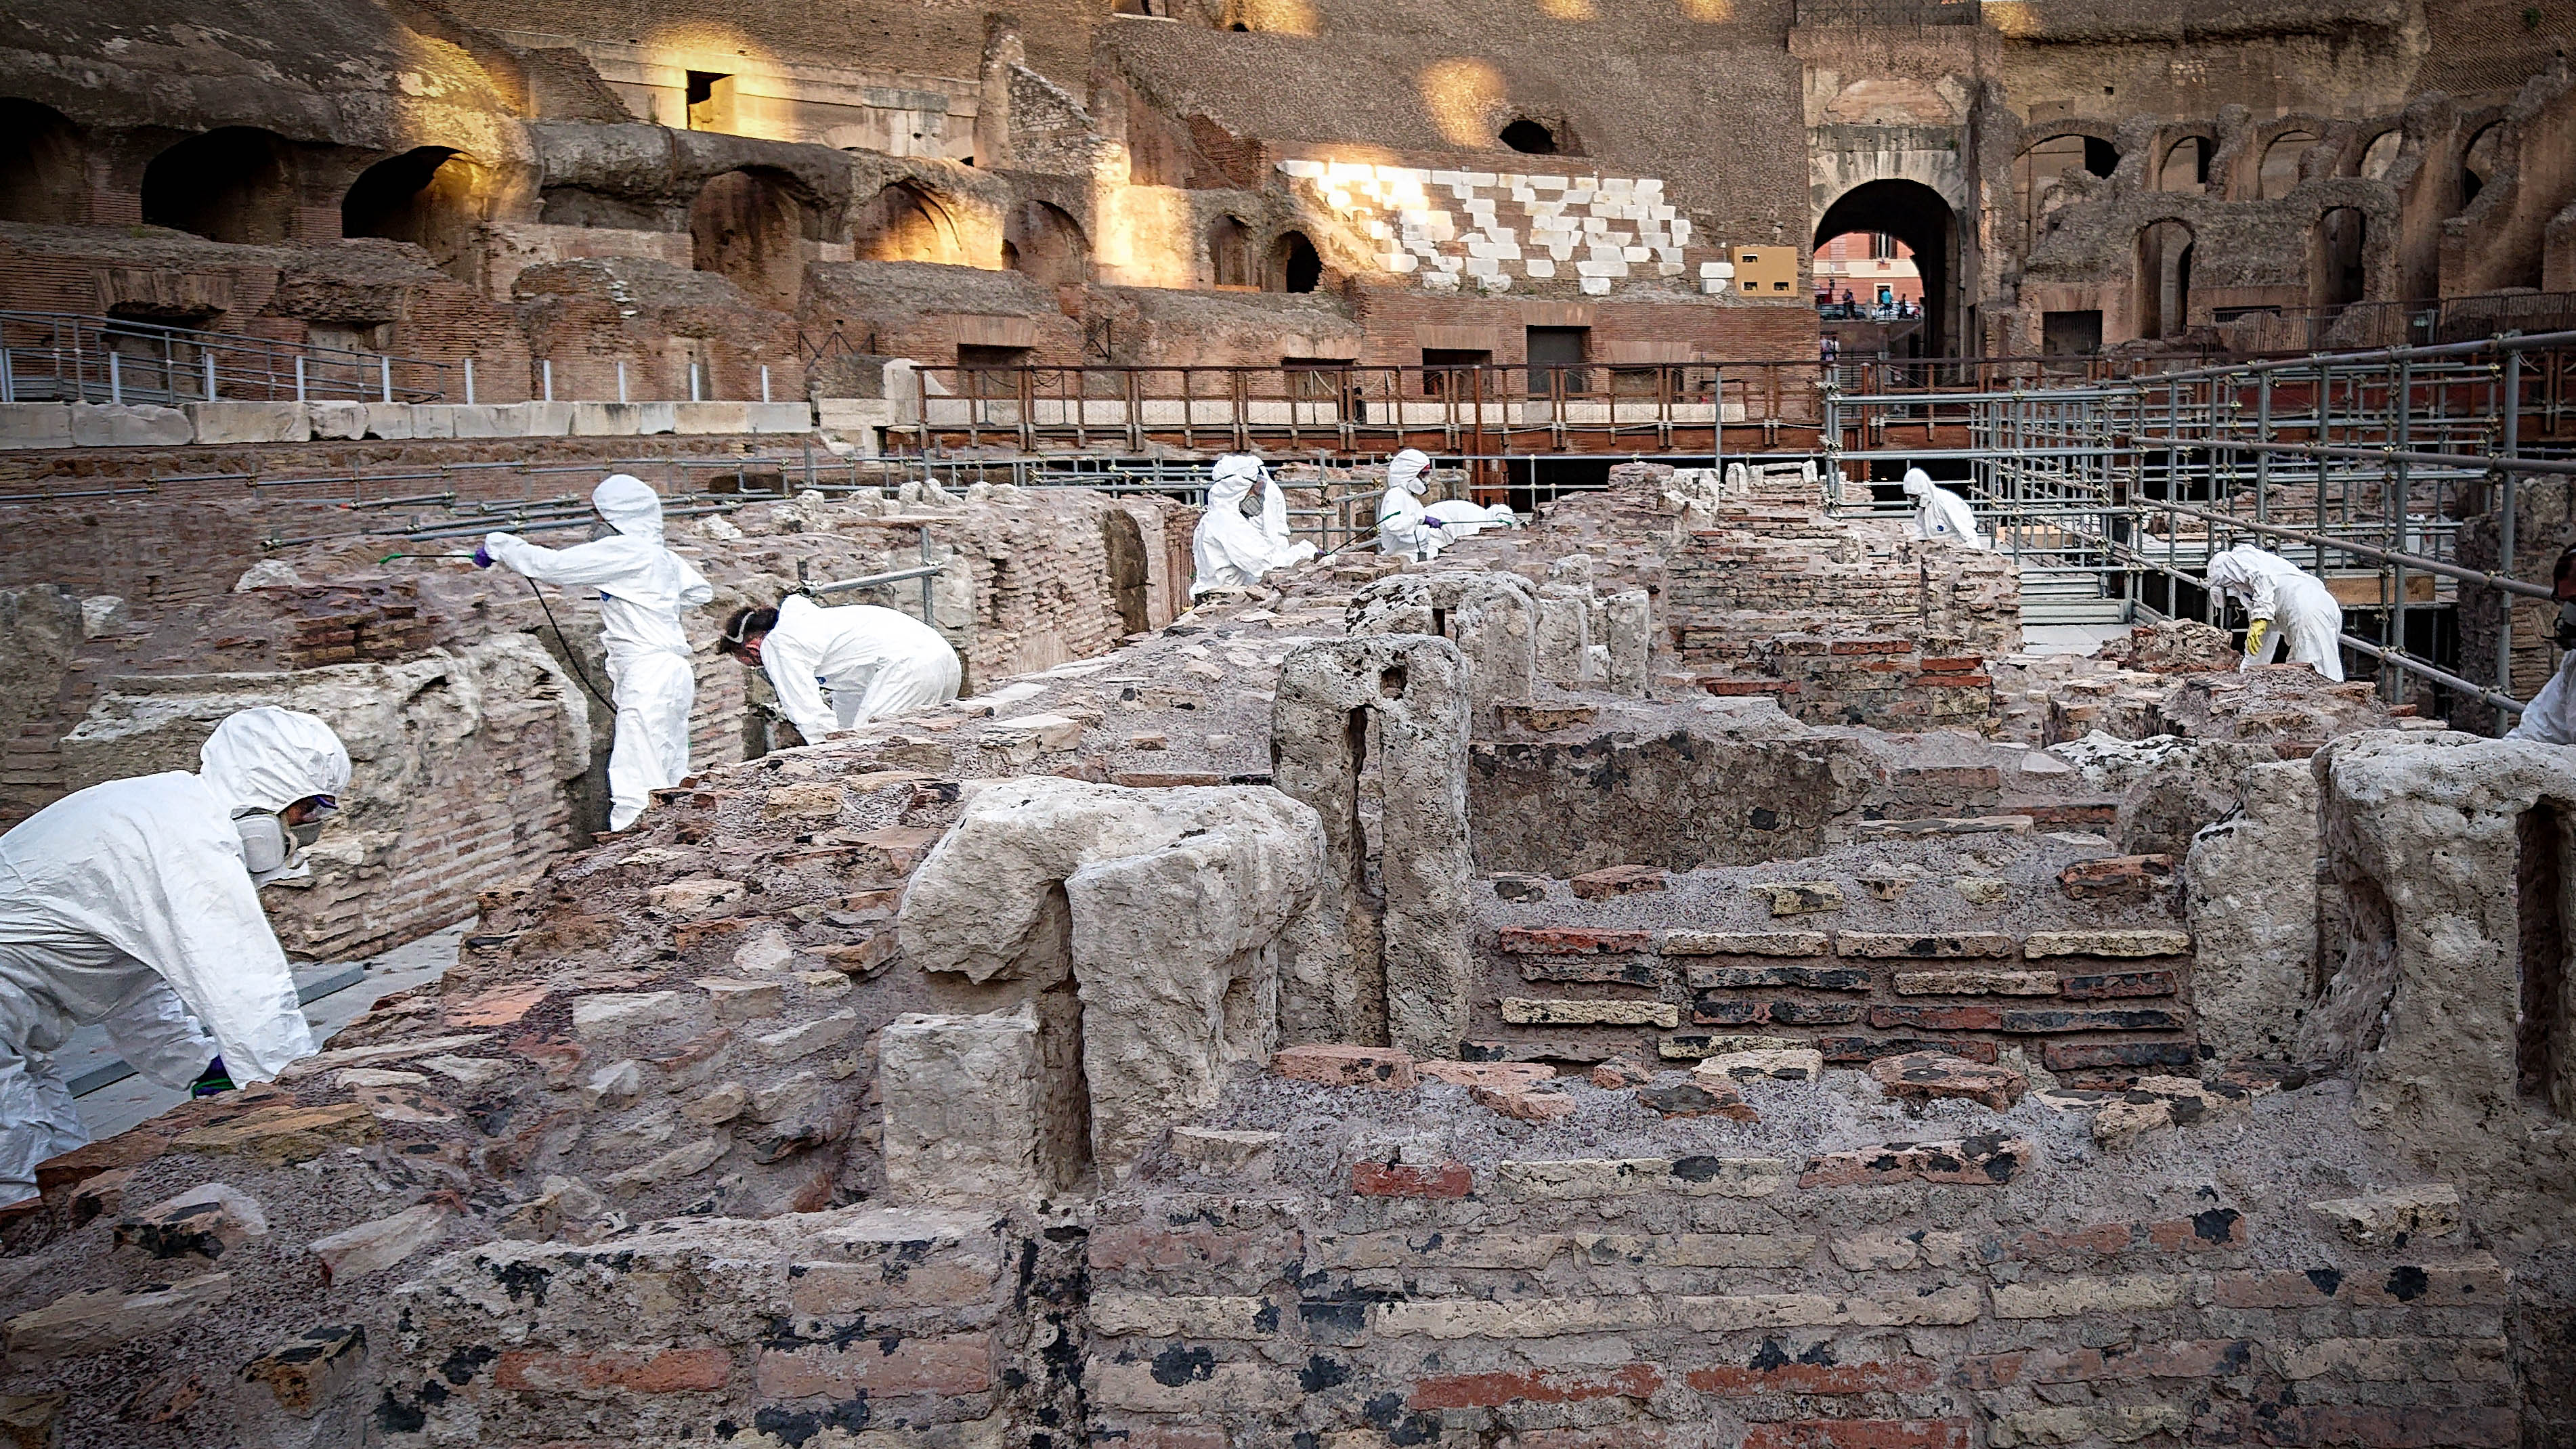 The Colosseum in Rome opens its underground levels | CNN Travel